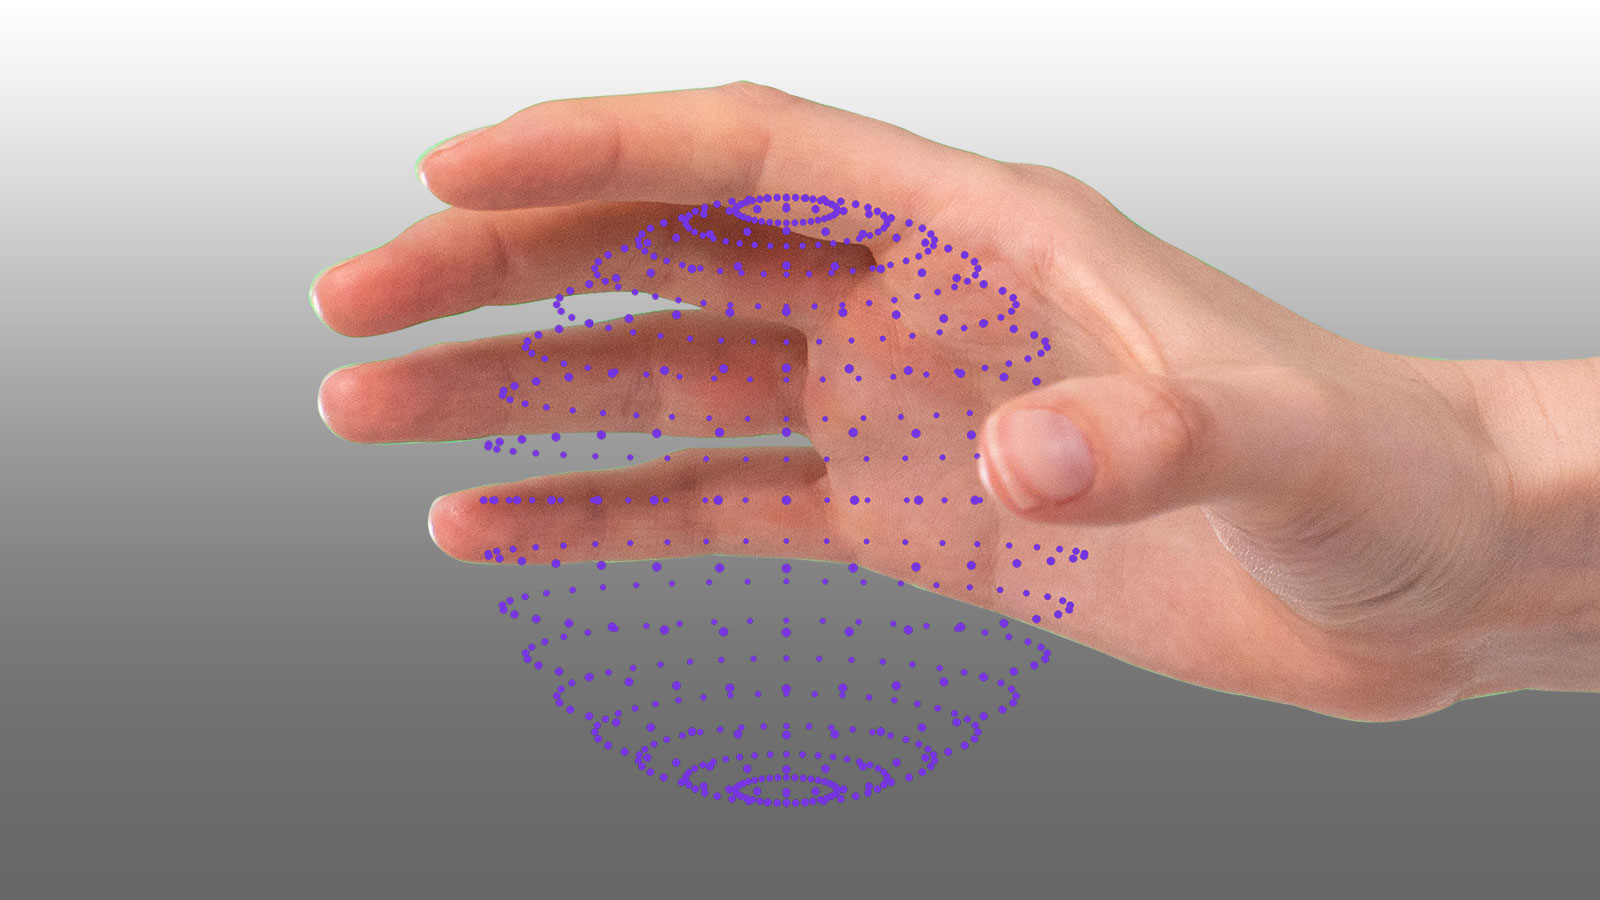 Ultraleap haptics particles in hand